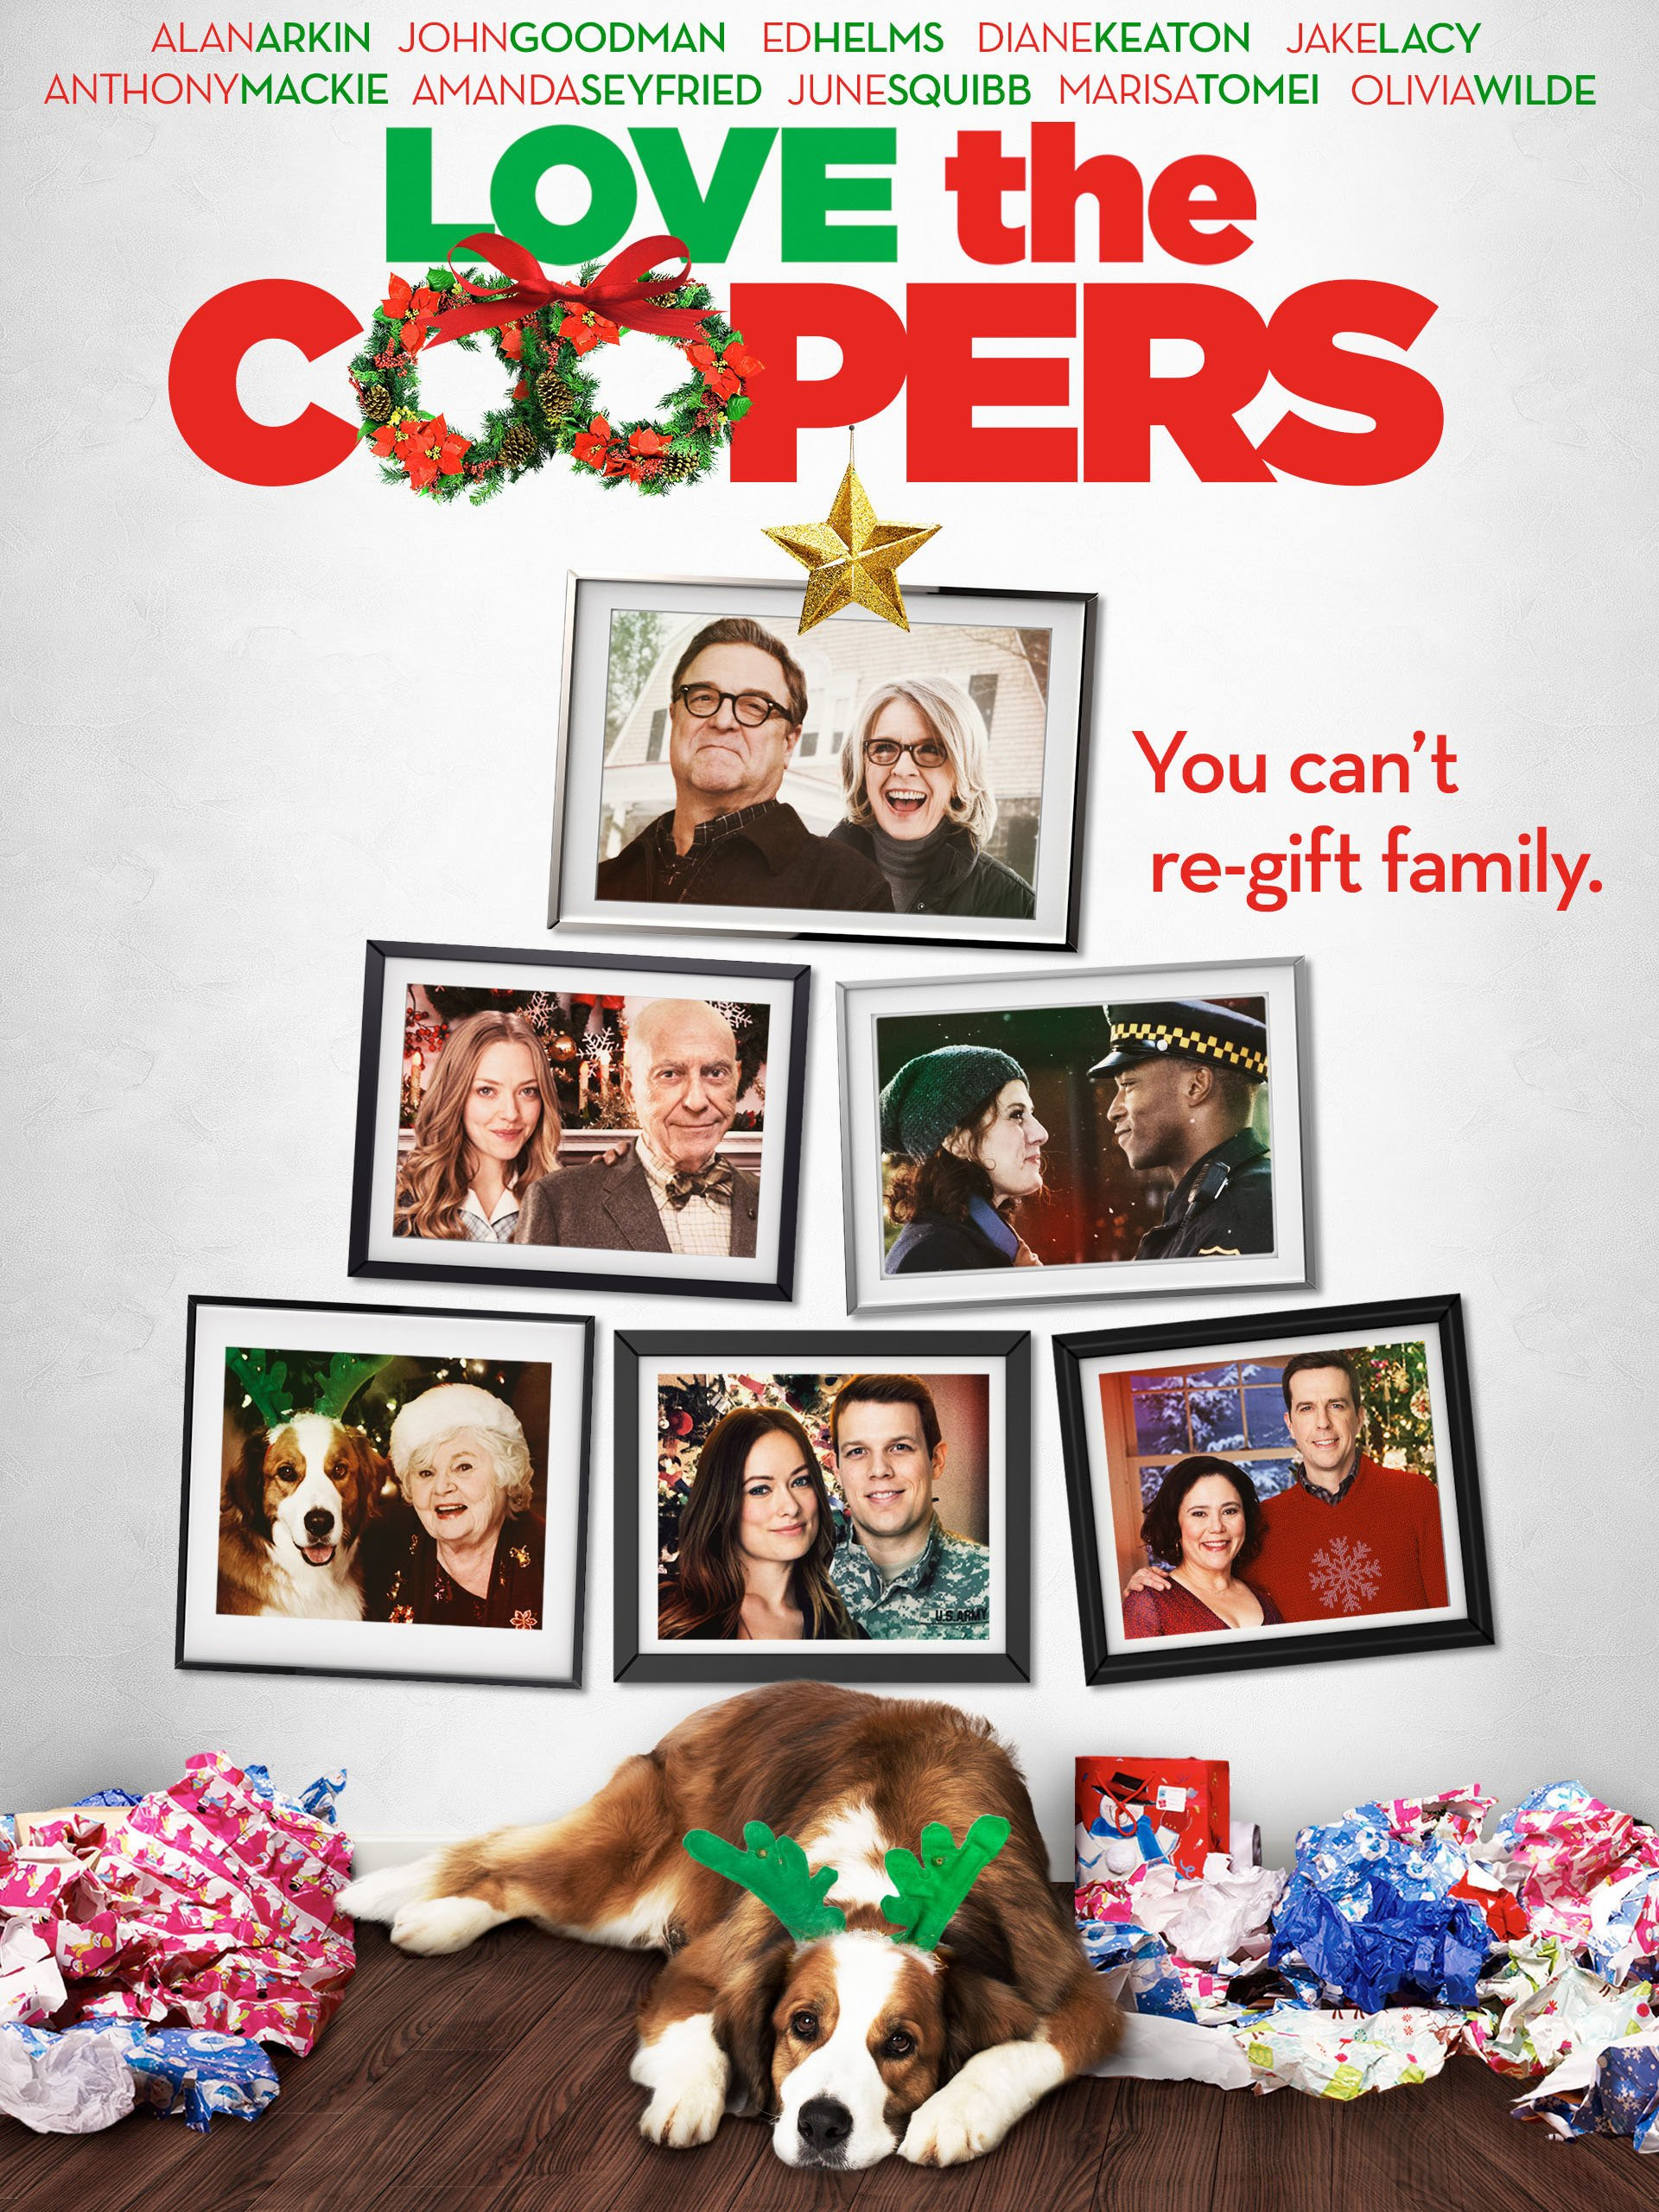 Amazon.com: Love The Coopers: Alan Arkin, John Goodman, Ed Helms ...